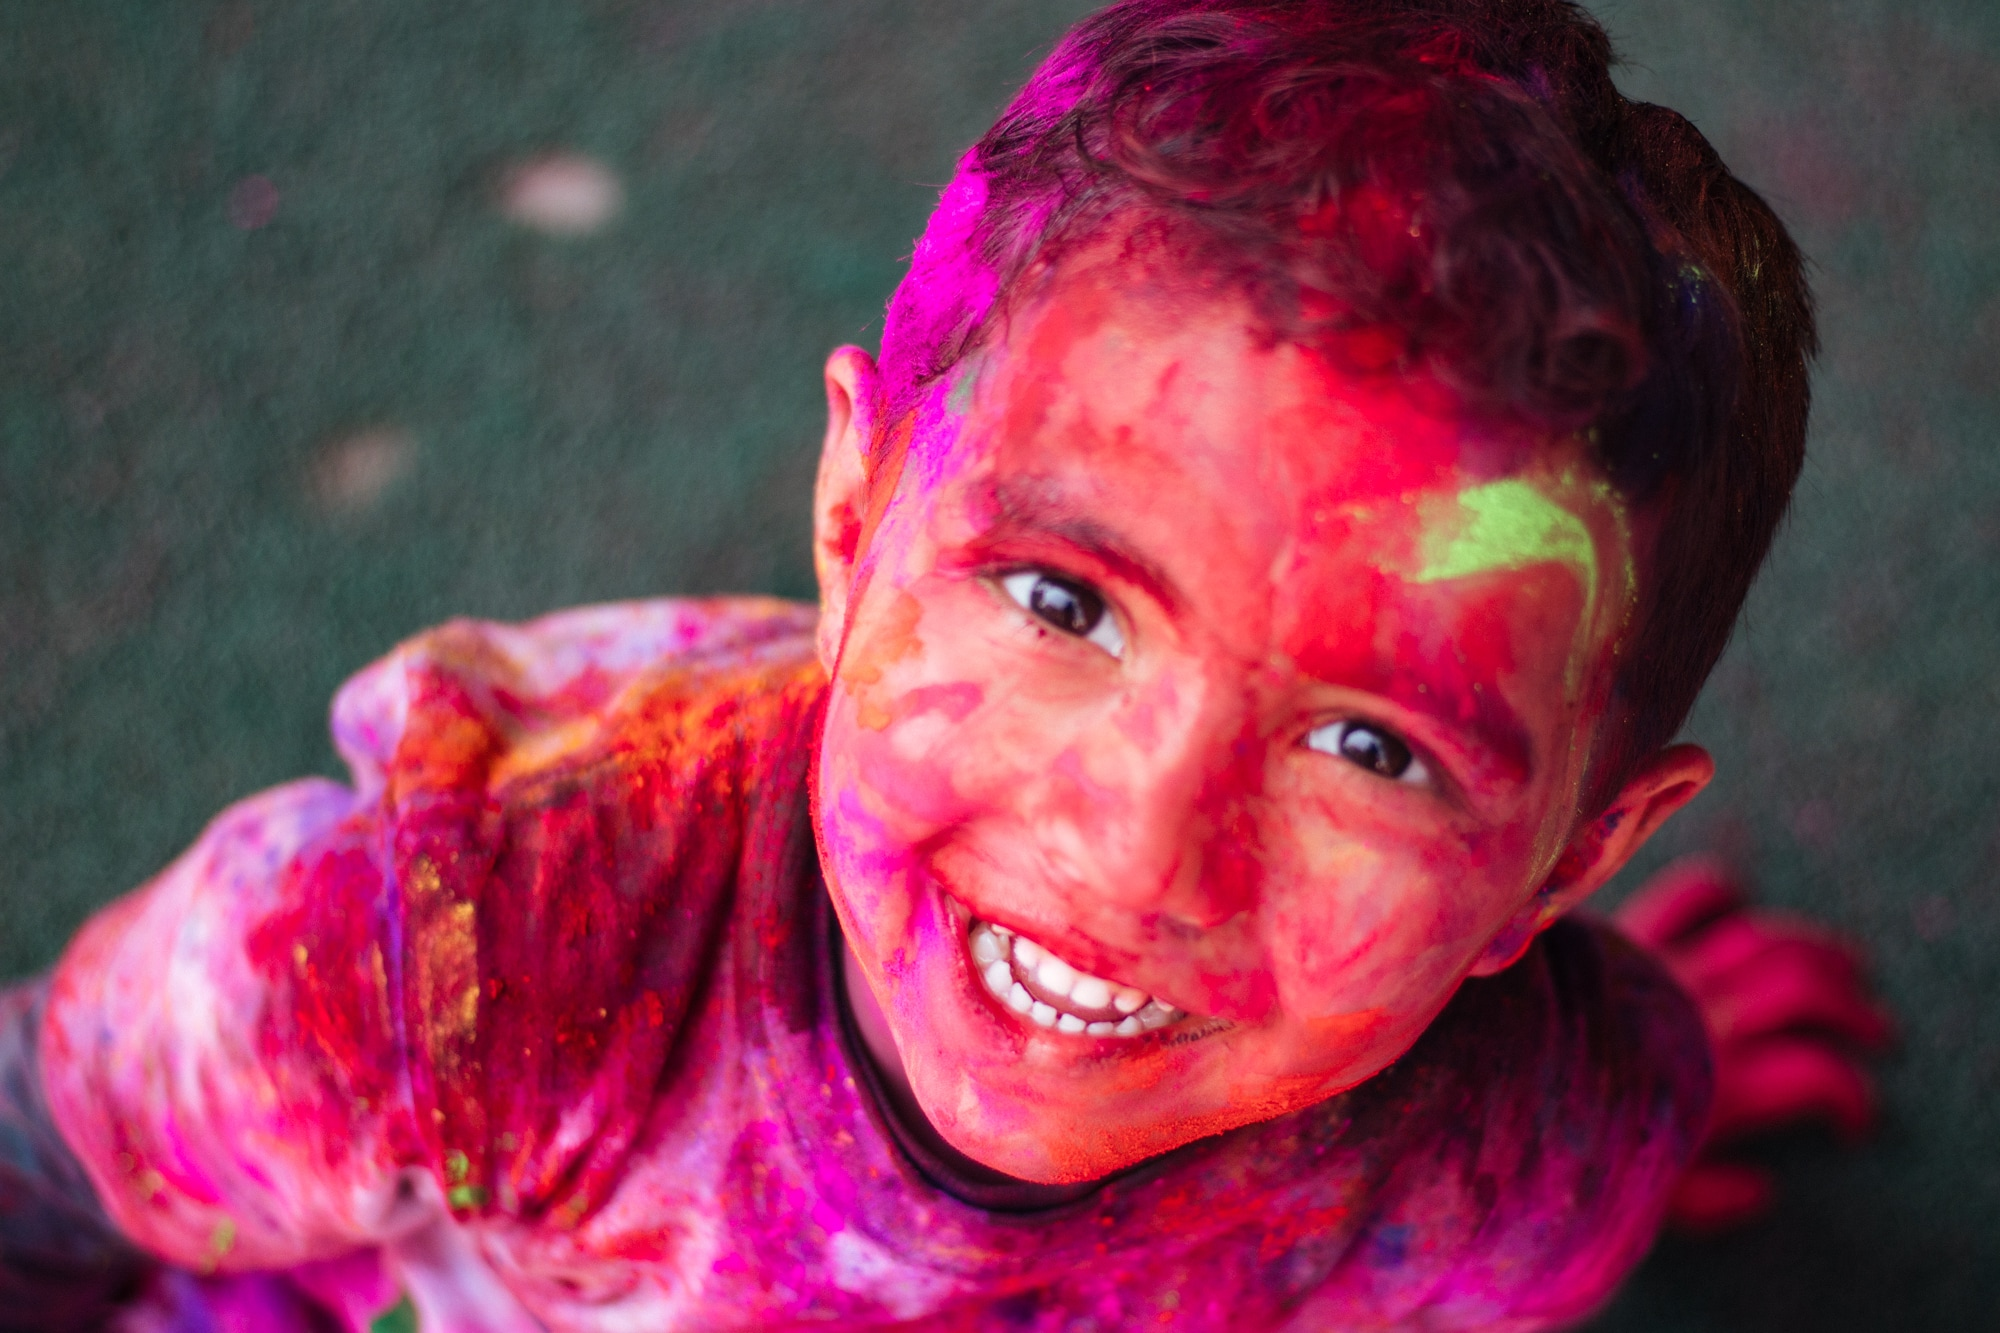 A young boy is completely covered in holi colours